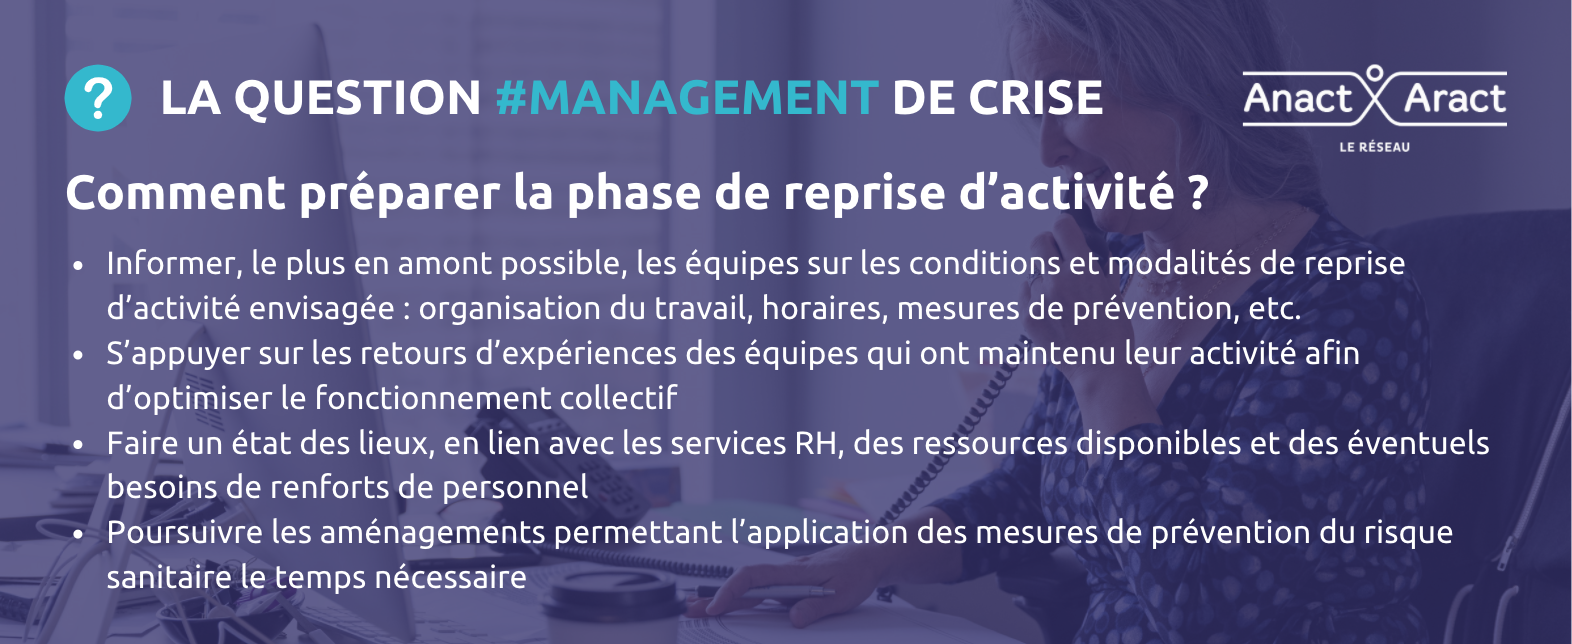 question-mgt-crise-4